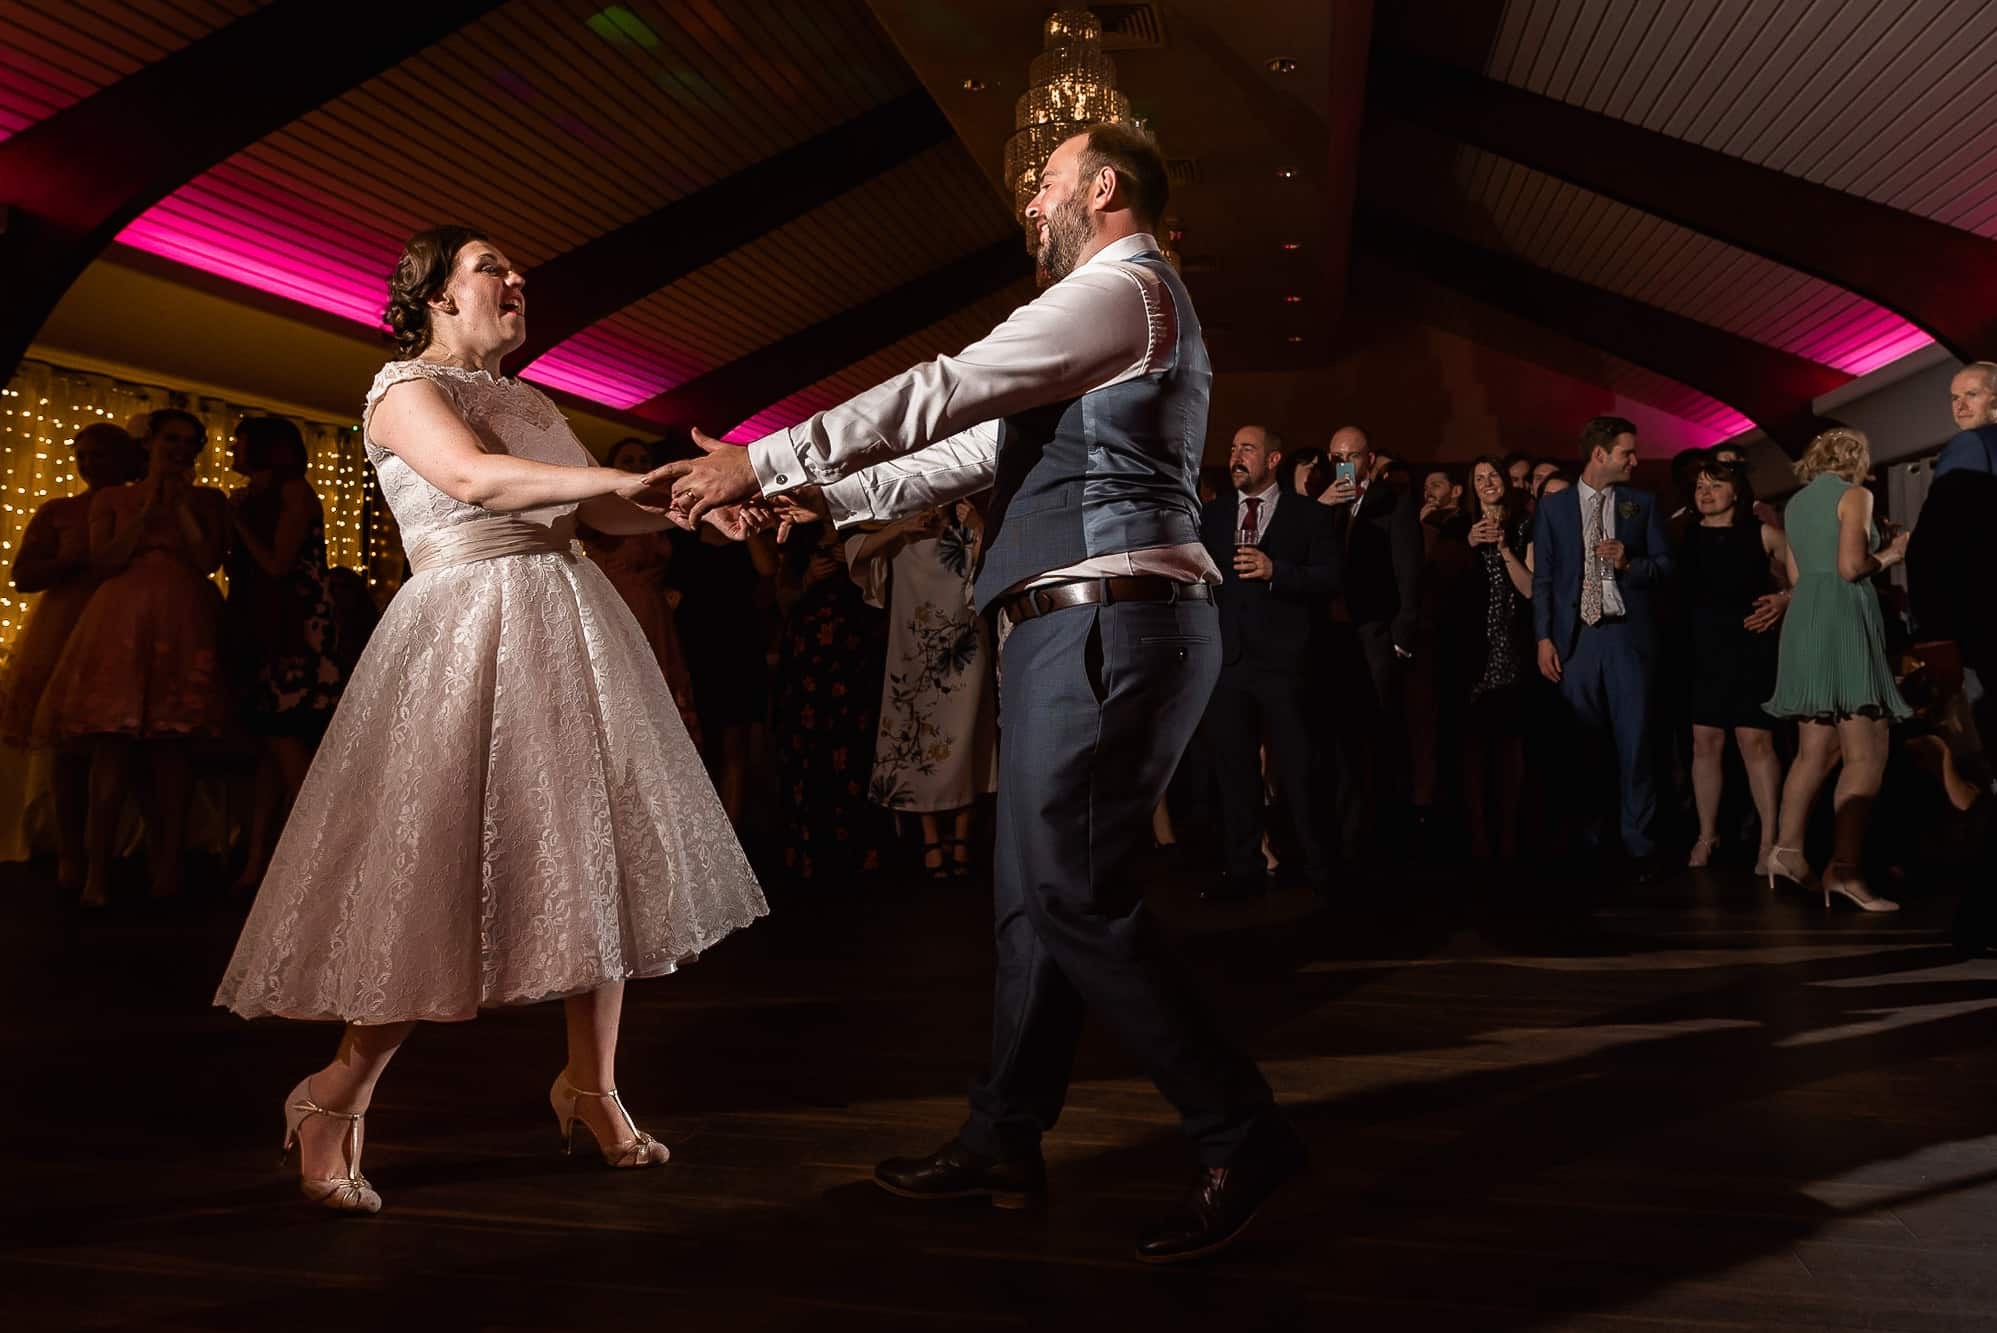 First dance at Colshaw Hall